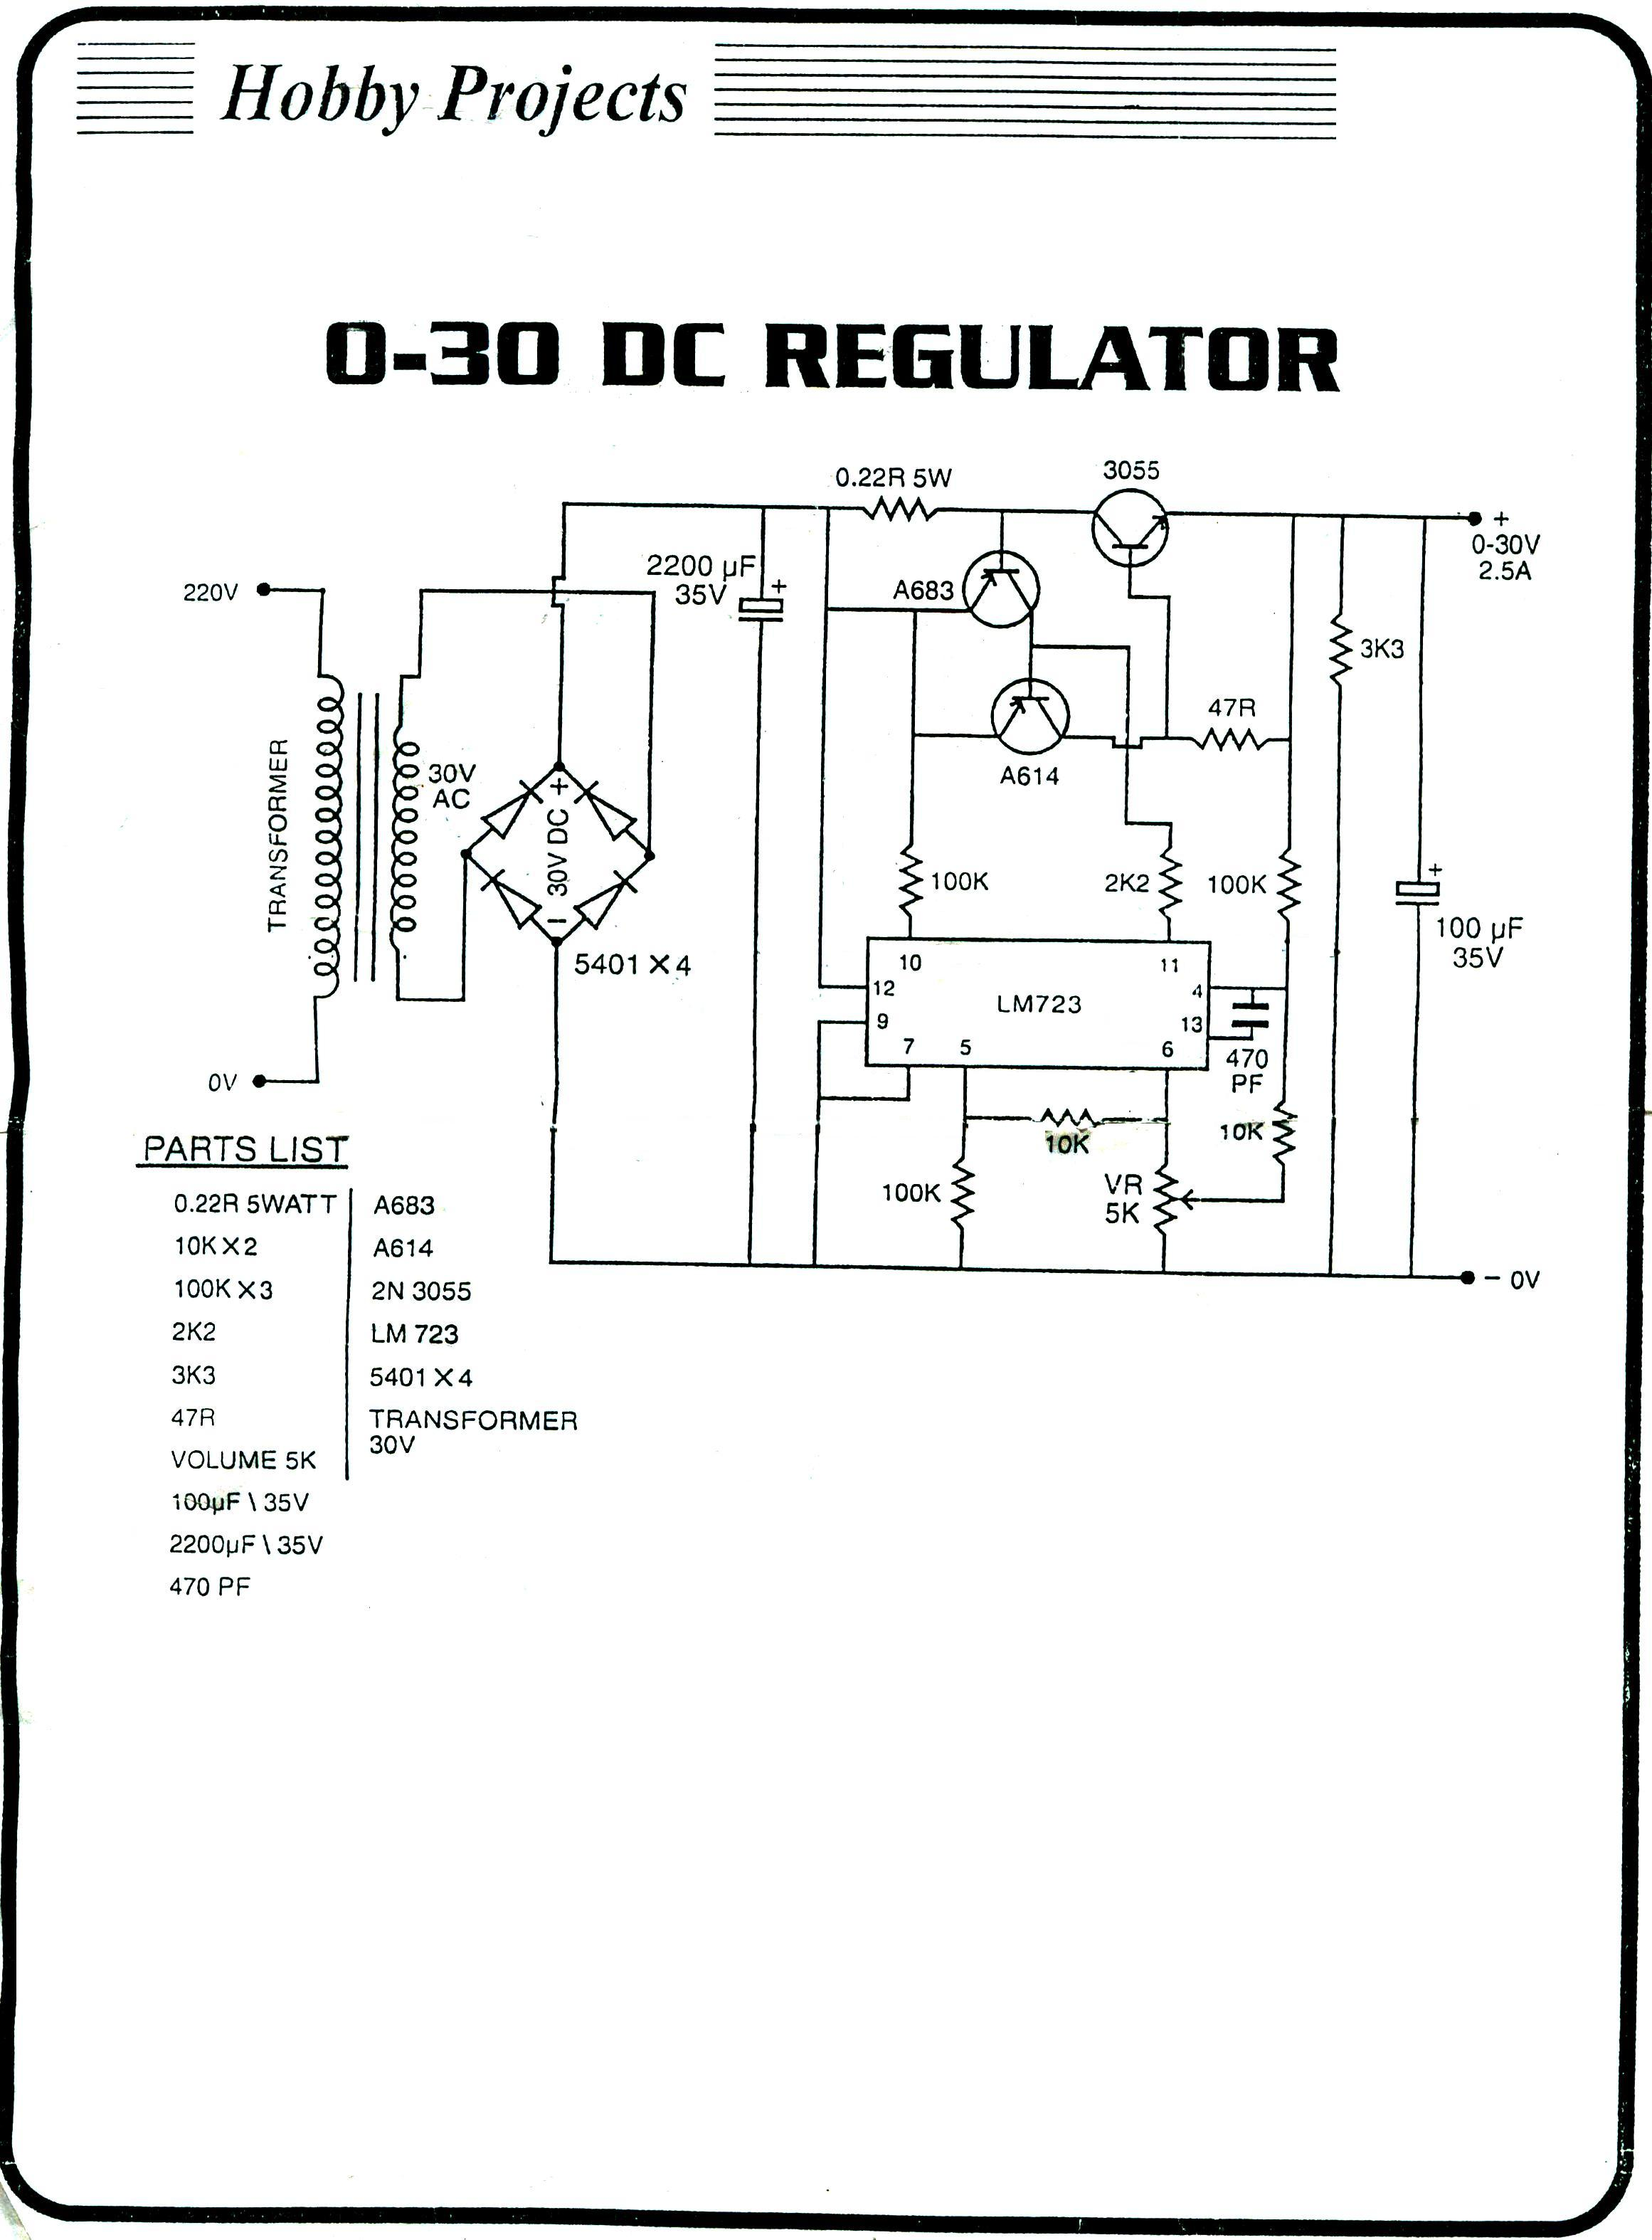 Pv Solar Inverter Circuit Diagram additionally Mppt solar charge controllers furthermore Top Linear Power Supply Regulator 5v 5a With 7812 And Lm723 further Vwtrikewire 1 furthermore Variable Power Supply. on 12 volt voltage regulator circuit diagram